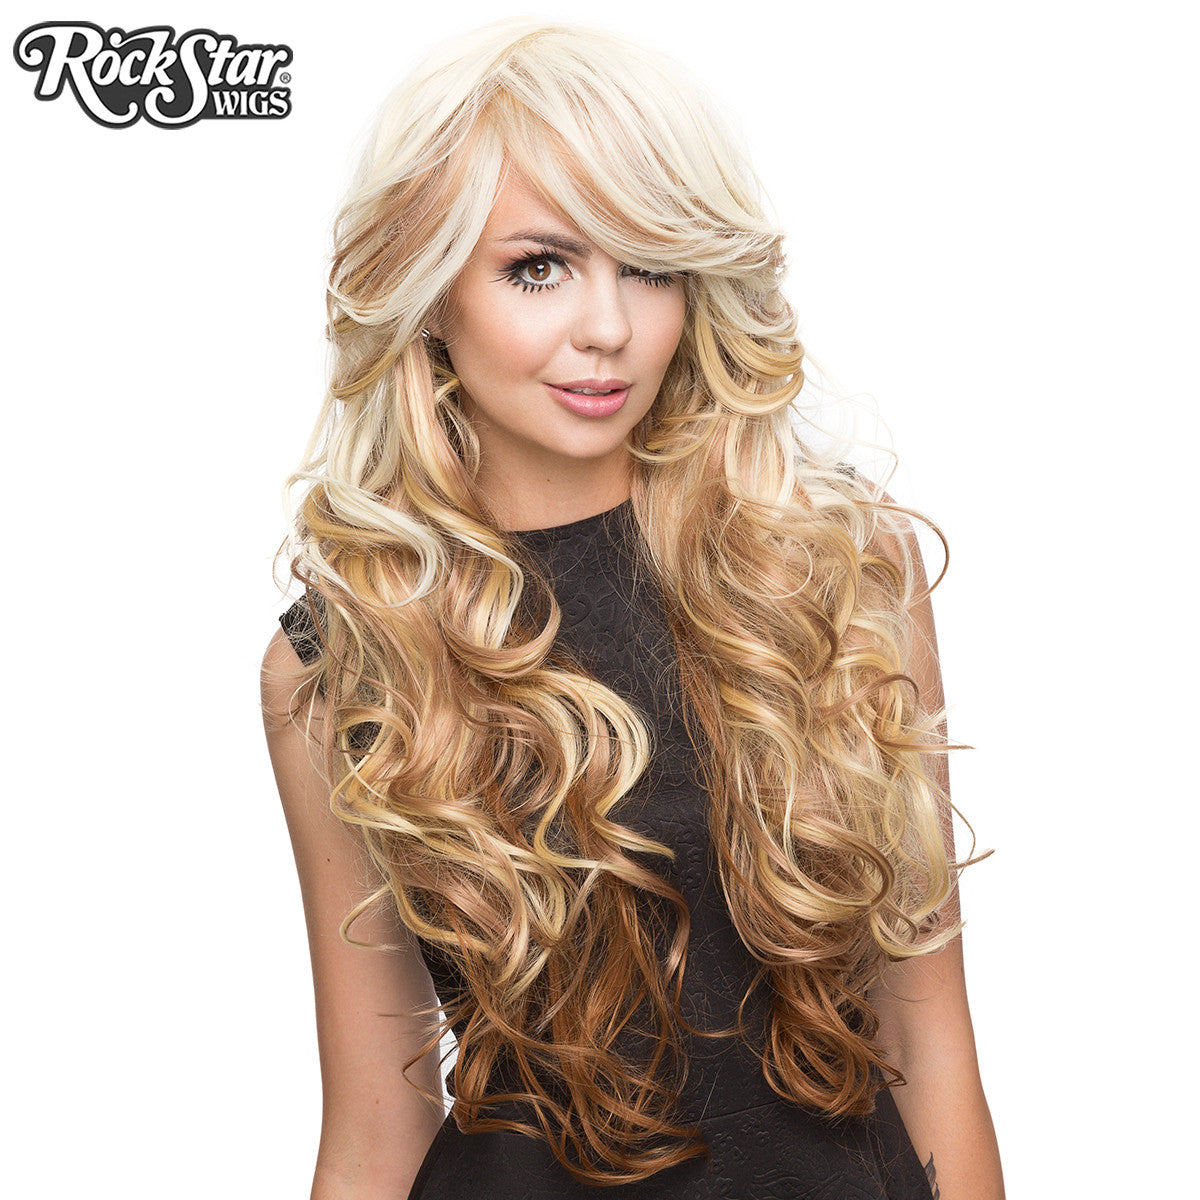 RockStar Wigs® <br> Triflect™ Collection - Blondeshell Bliss -00222